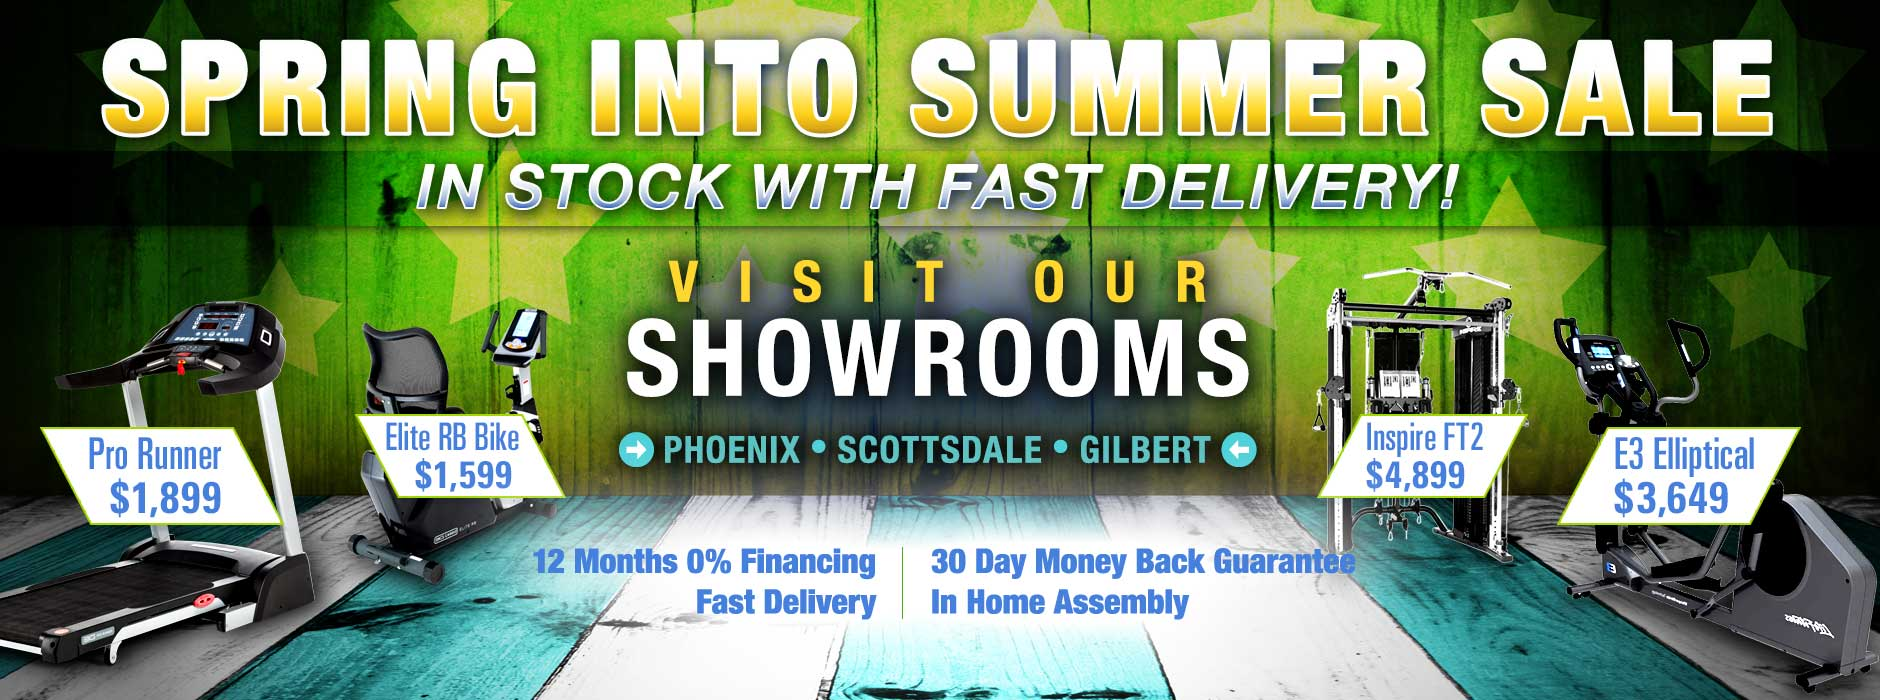 At Home Fitness Inventory In Stock with Fast Delivery - Spring Into Summer Sale - Visit our Showrooms